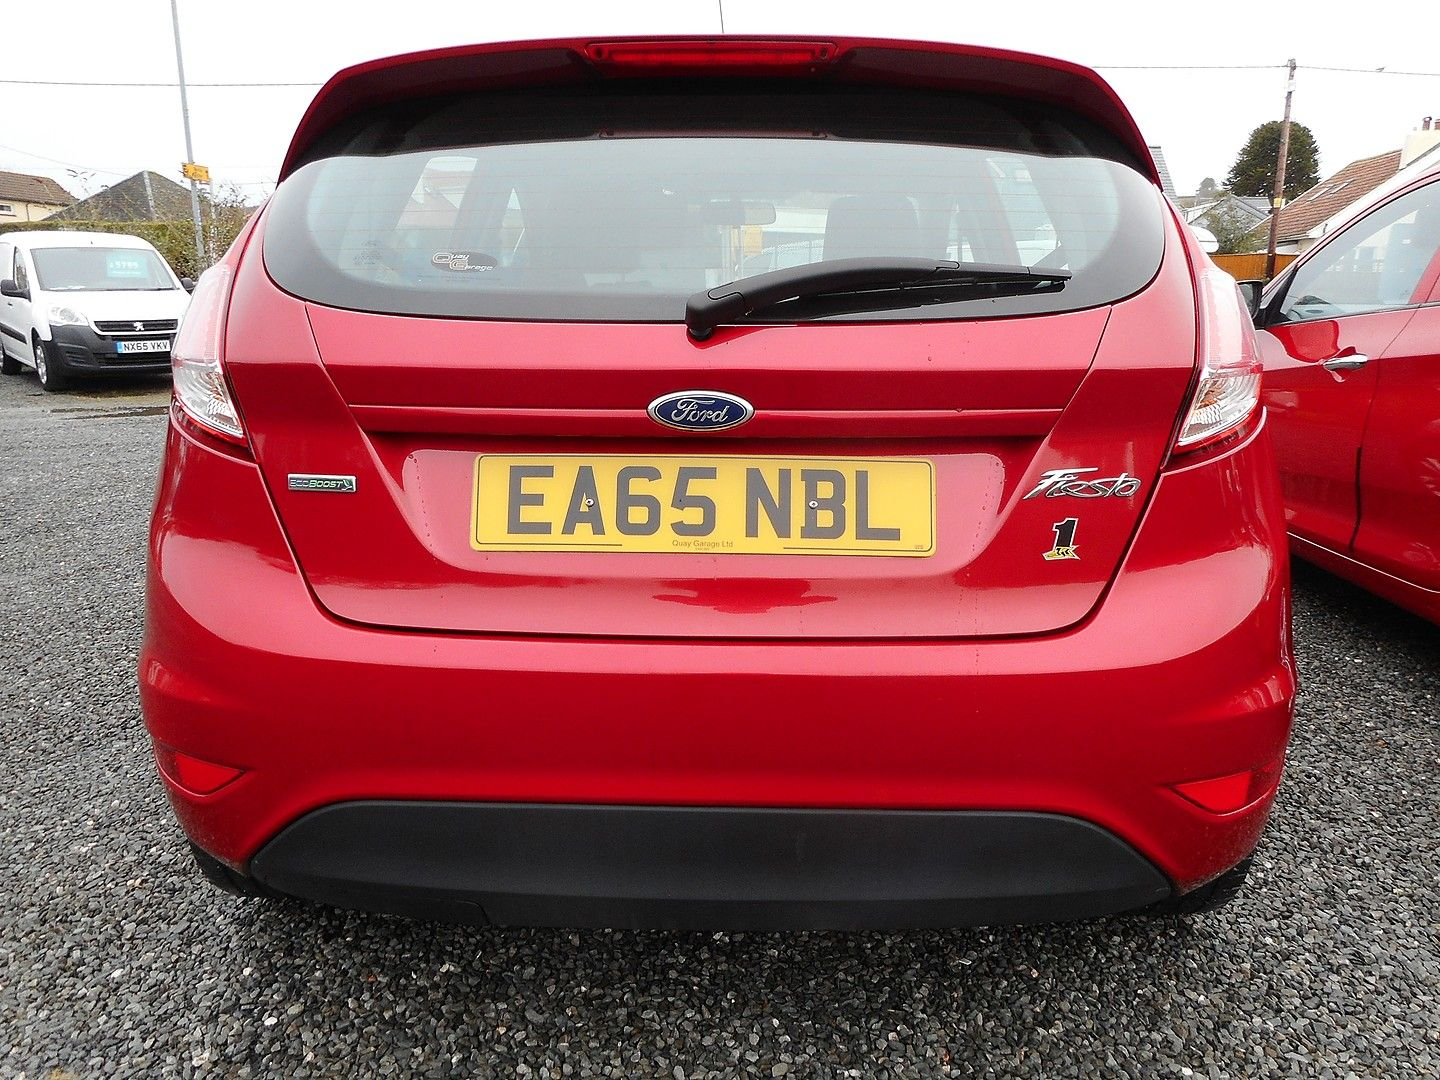 FORD Fiesta Zetec 1.0 80PS Start/Stop (2015) - Picture 15